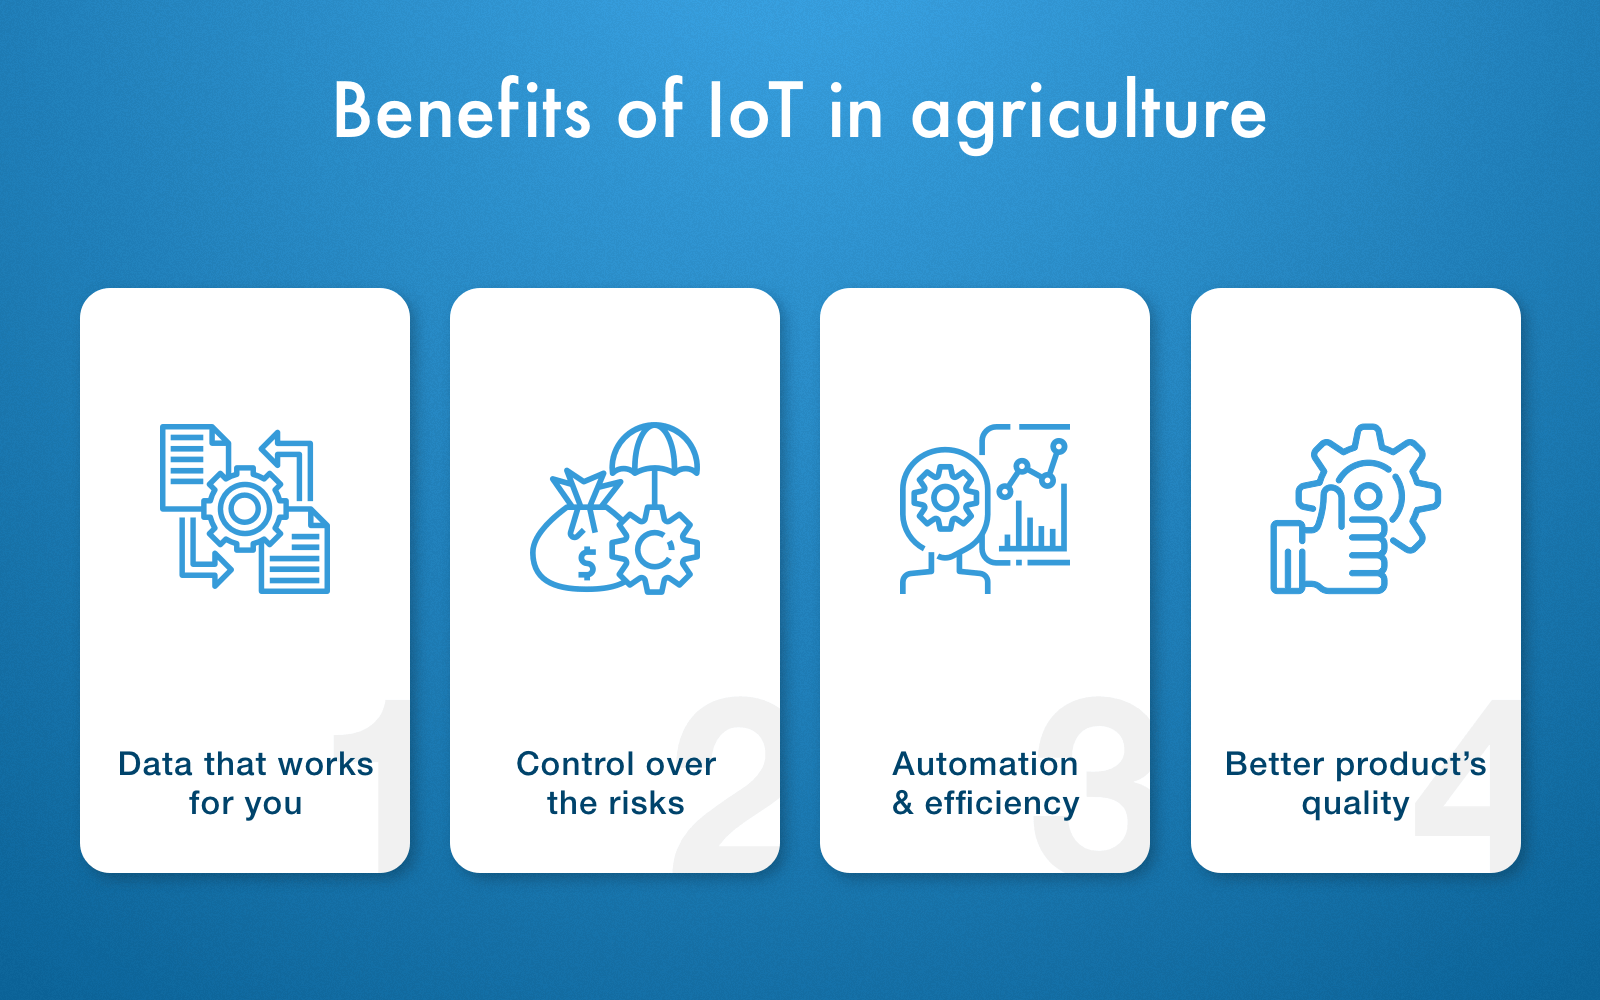 Advantages of modern technology in agriculture